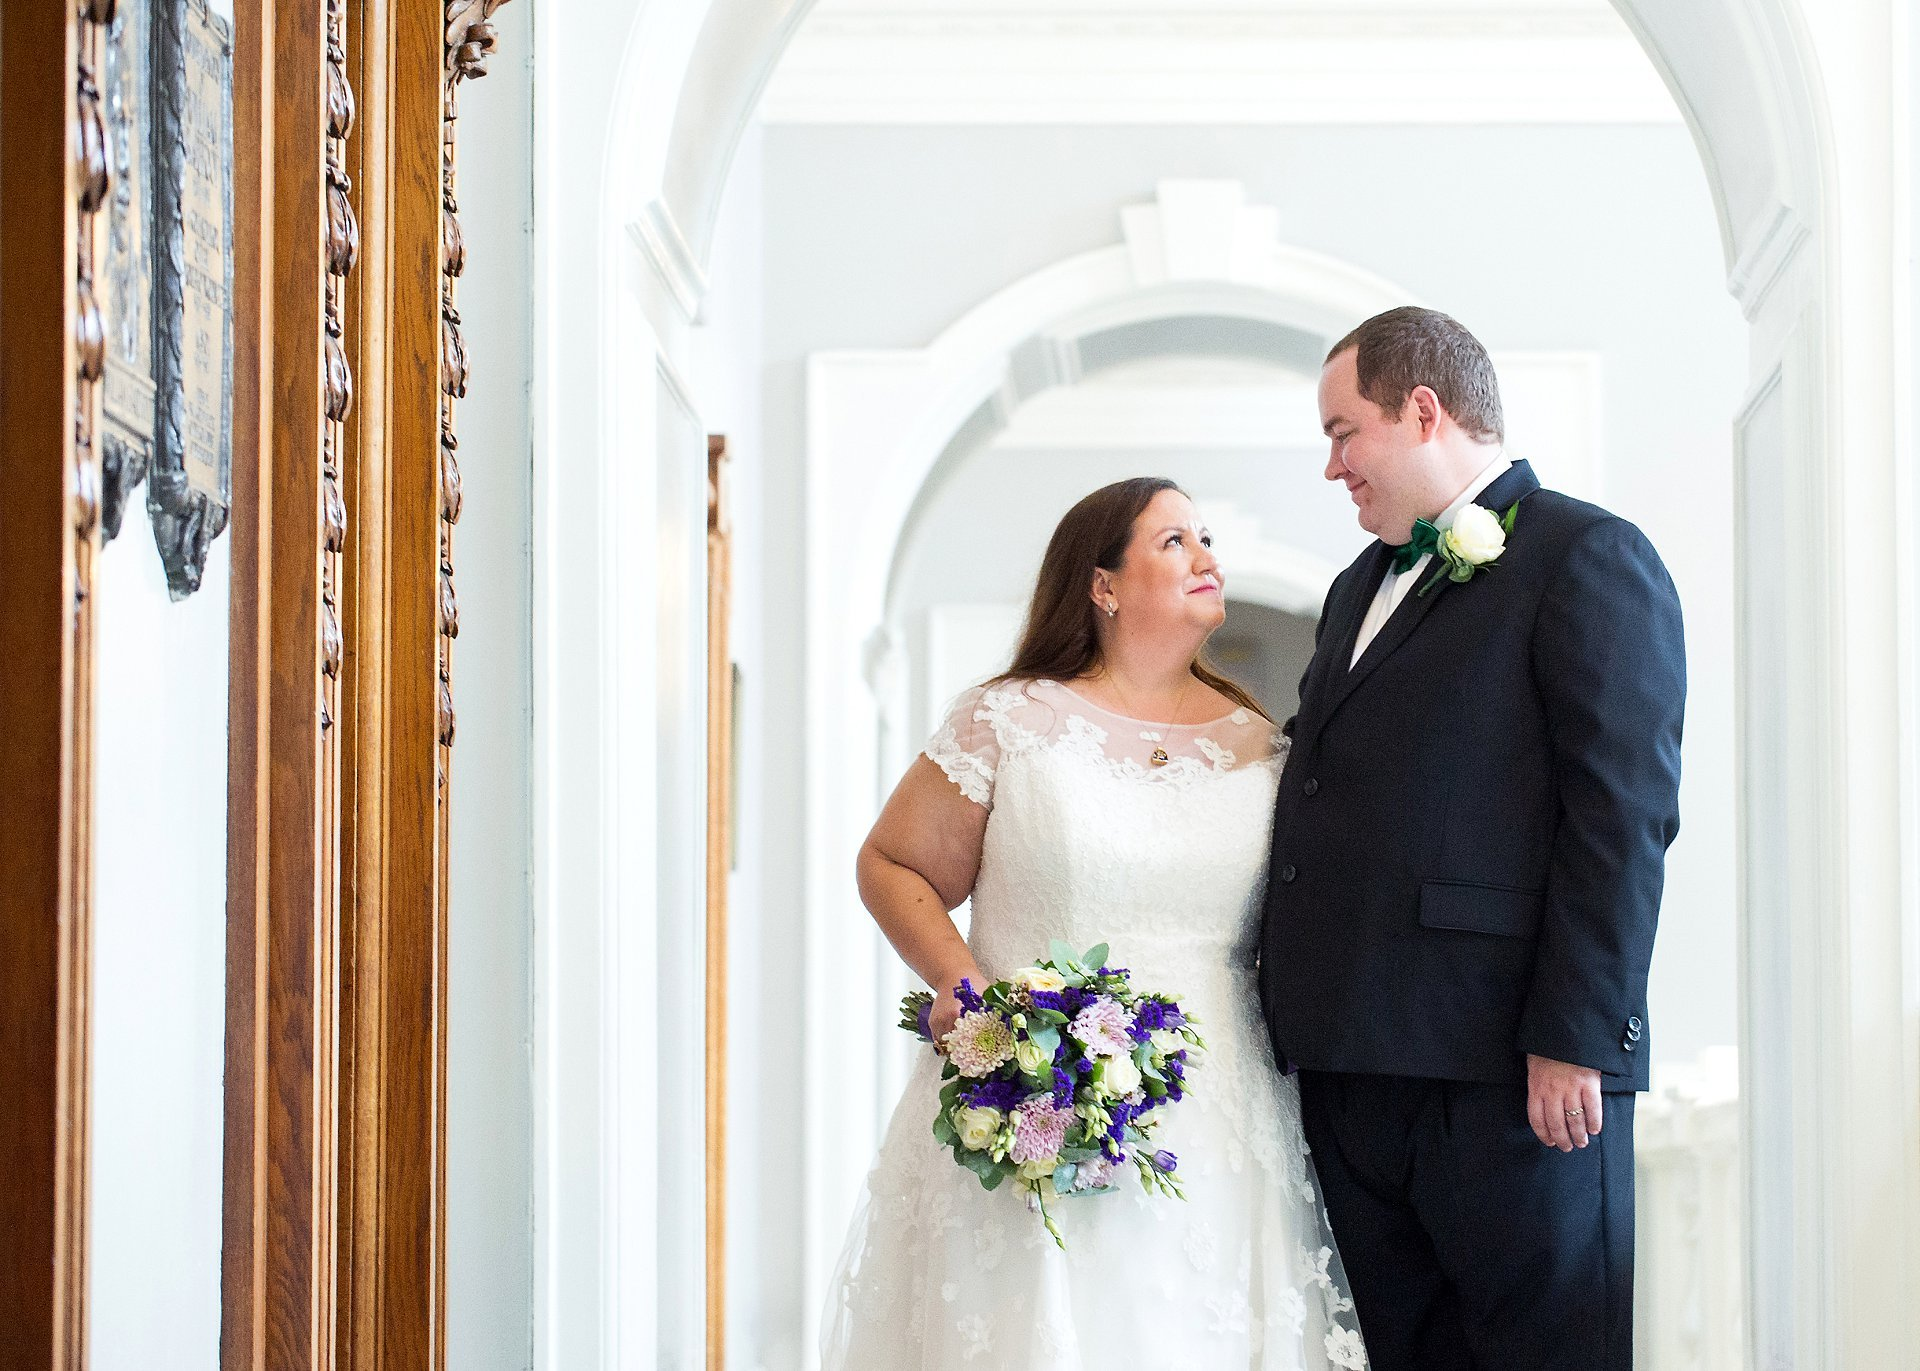 Bride and groom pose for a wedding photograph during their Greenwich wedding at popular venue, Woolwich Town Hall